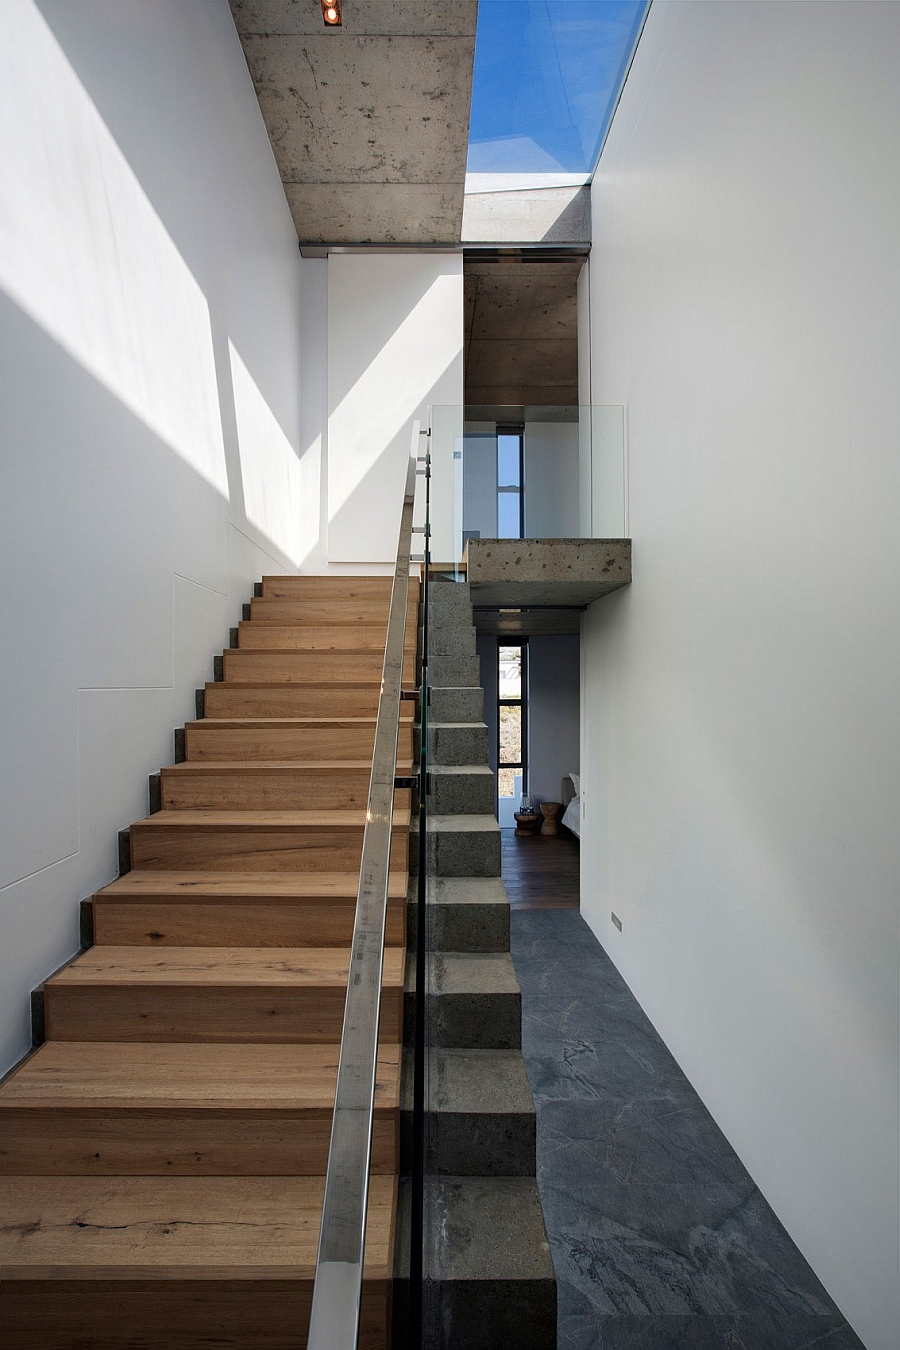 Interesting use of concrete and wood to shape a stylish staircase